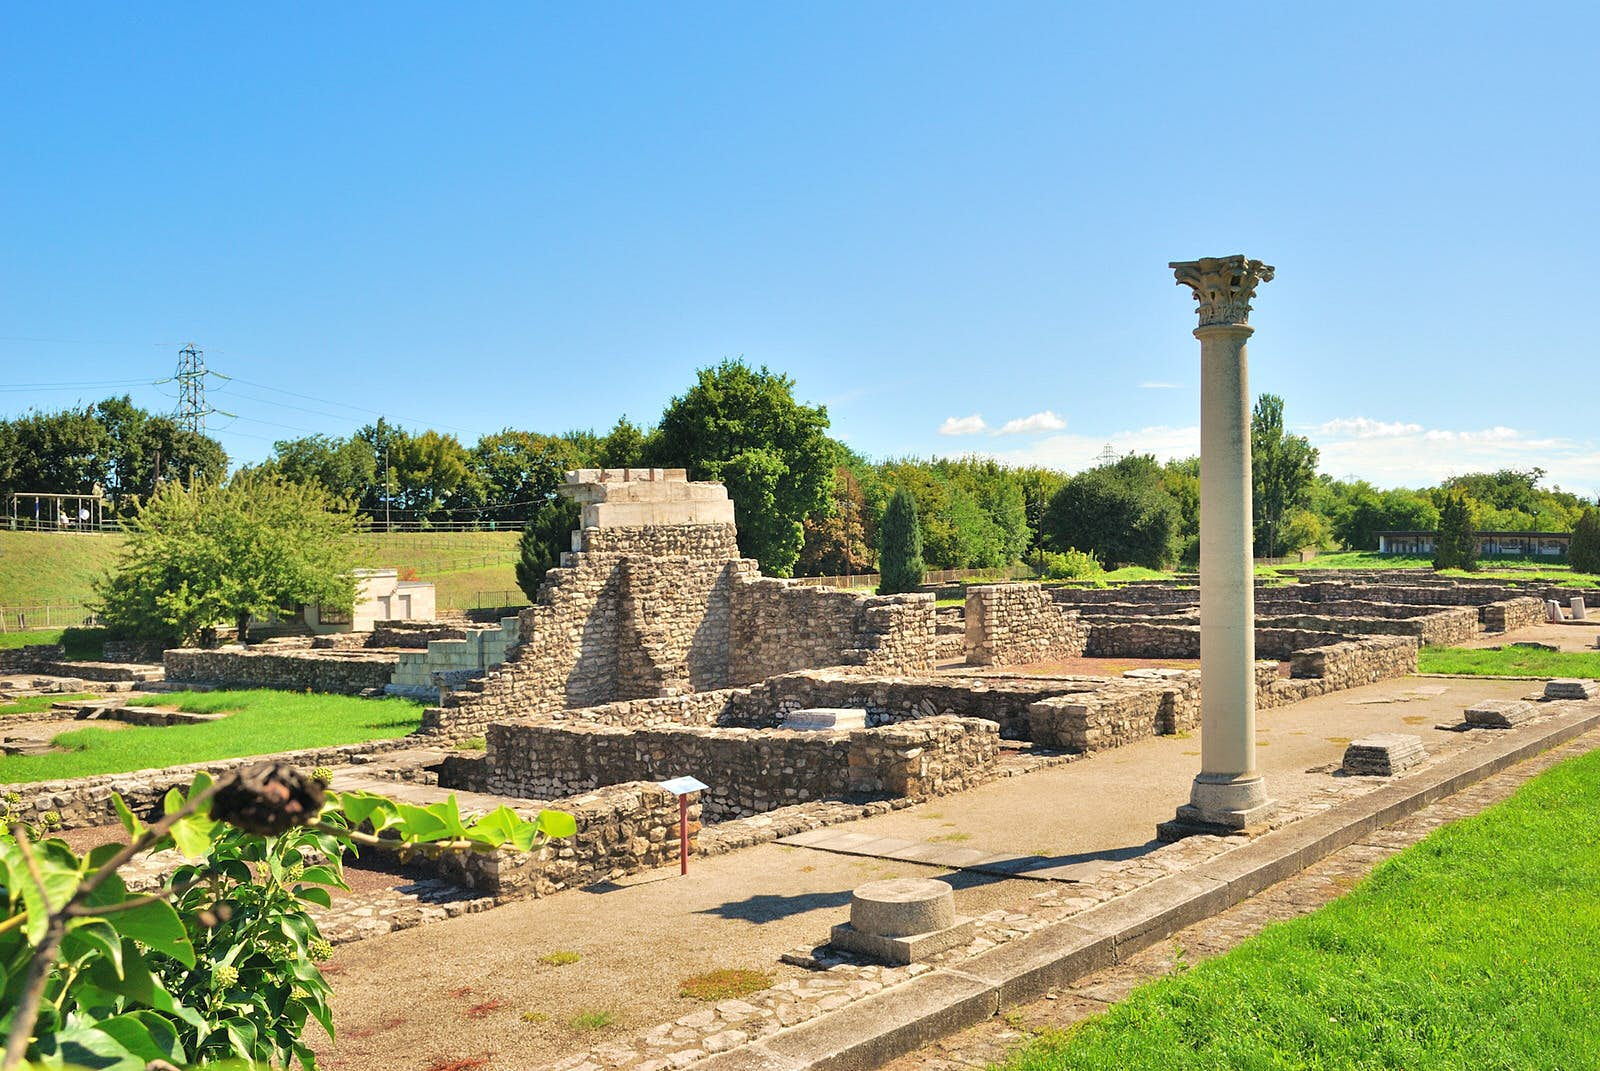 The ruins of the Aquincum Roman baths: a collection of small walls and pillars standing in a green field